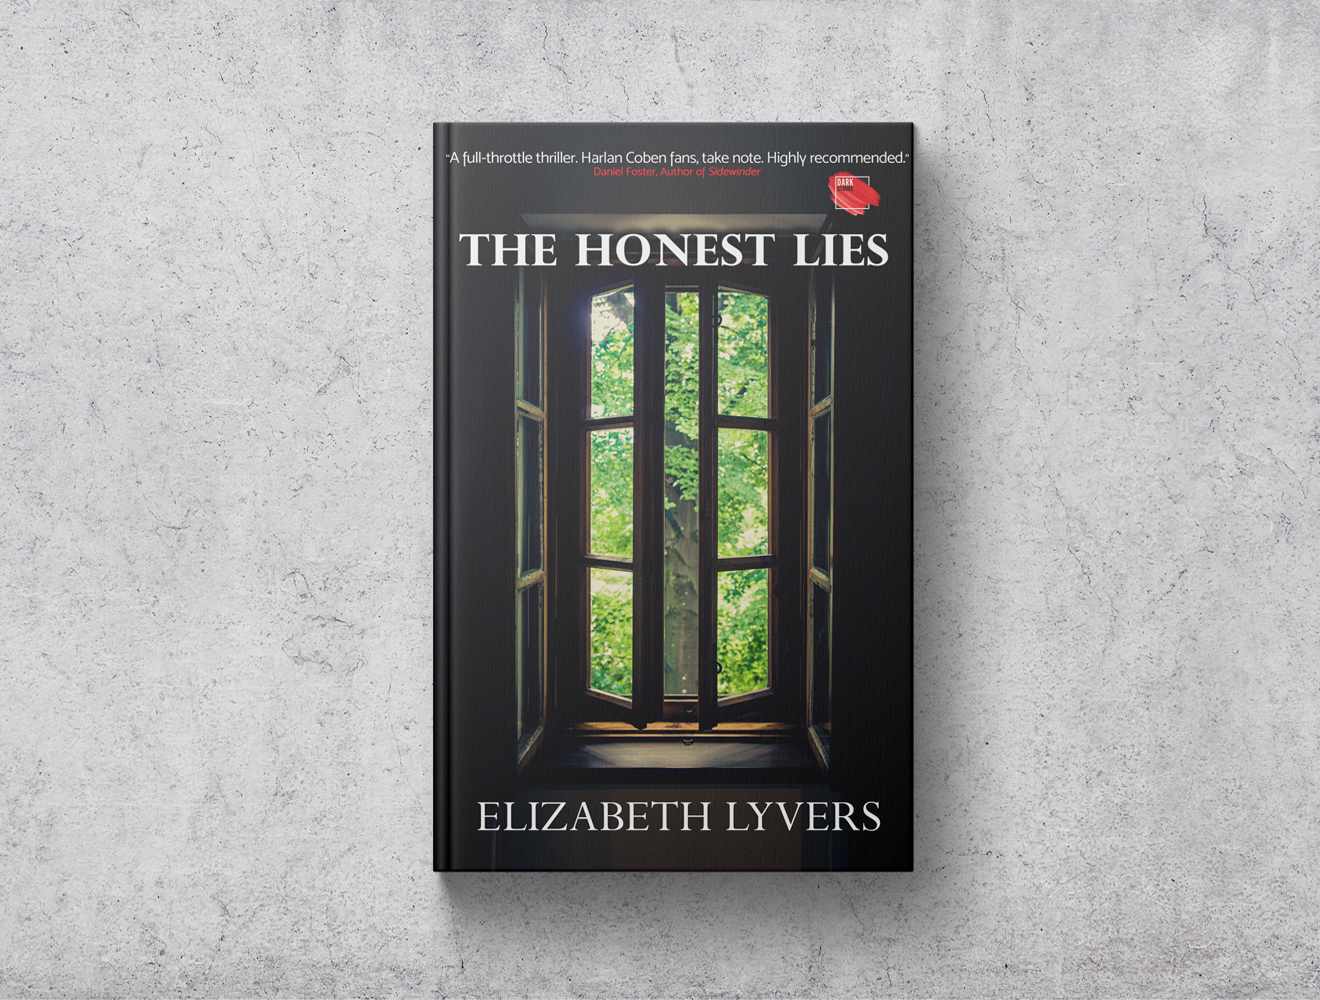 The Honest Lies